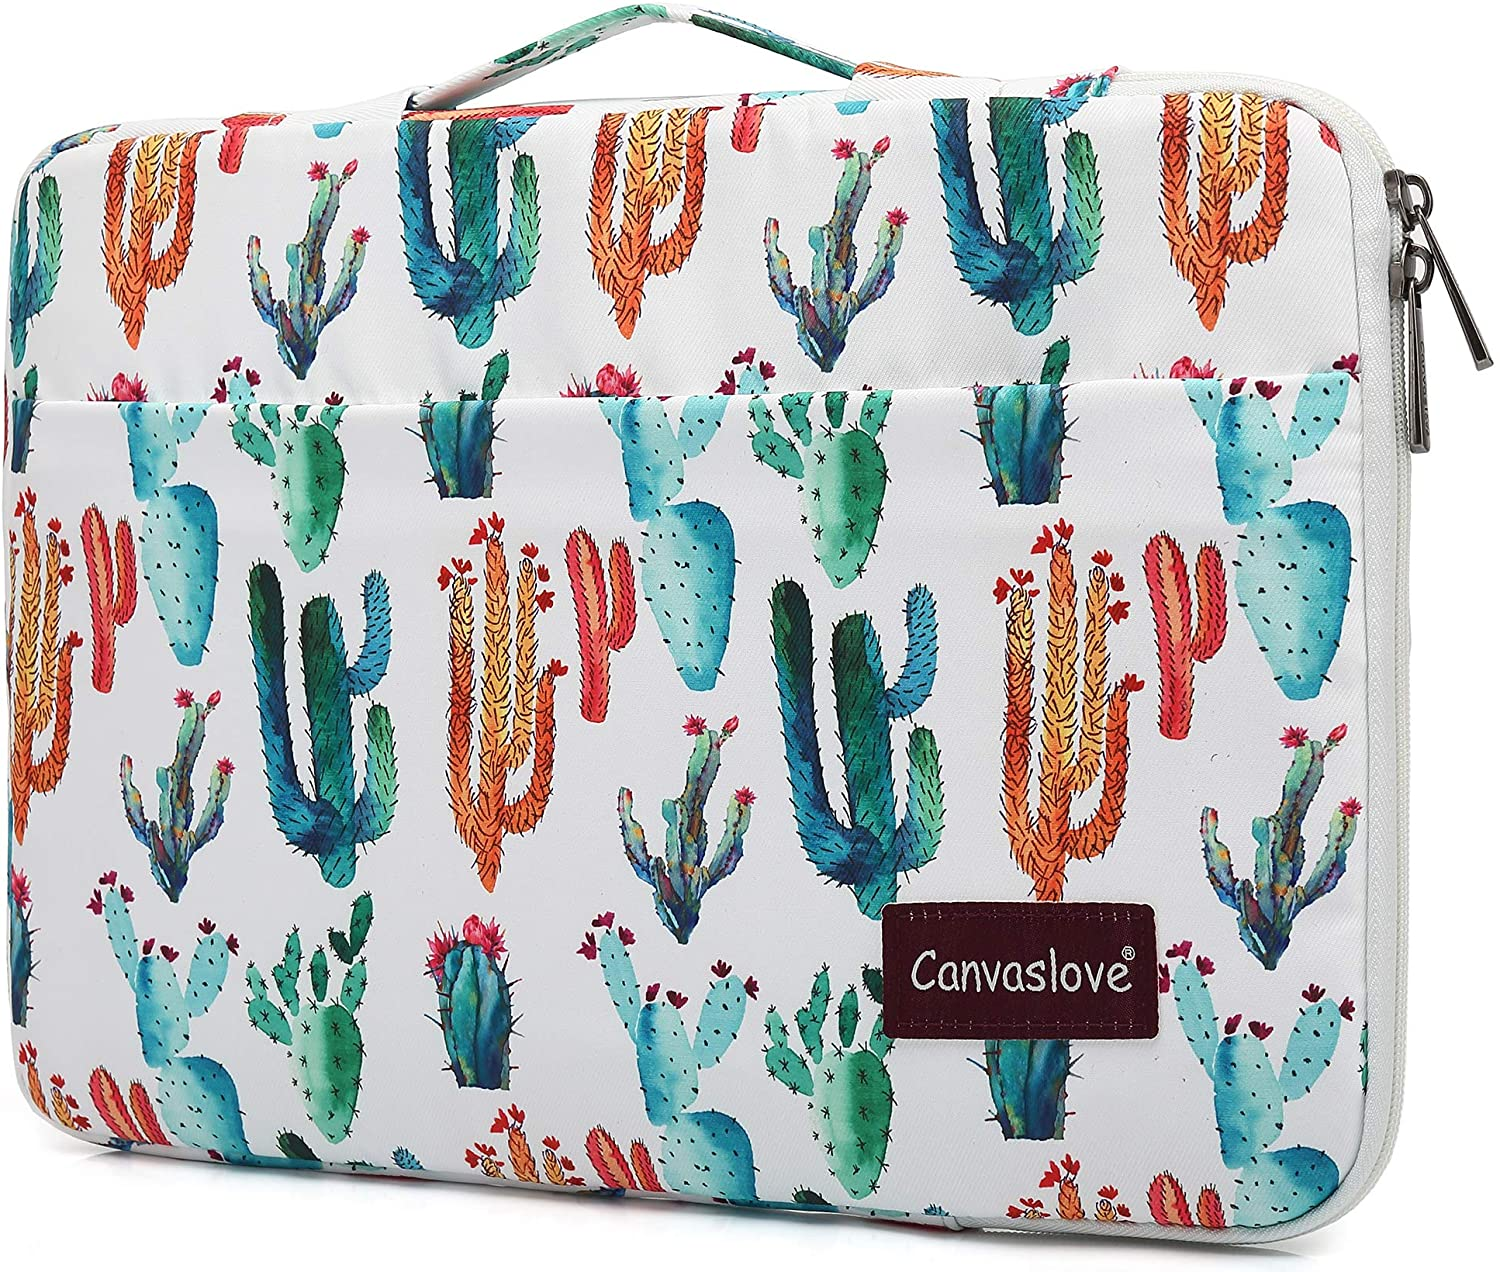 Canvaslove Cactus Waterproof Corner and Bottom Rebound Bubble Cushioned Laptop Sleeve Case with Handle and Pockets for 14 inch Laptop